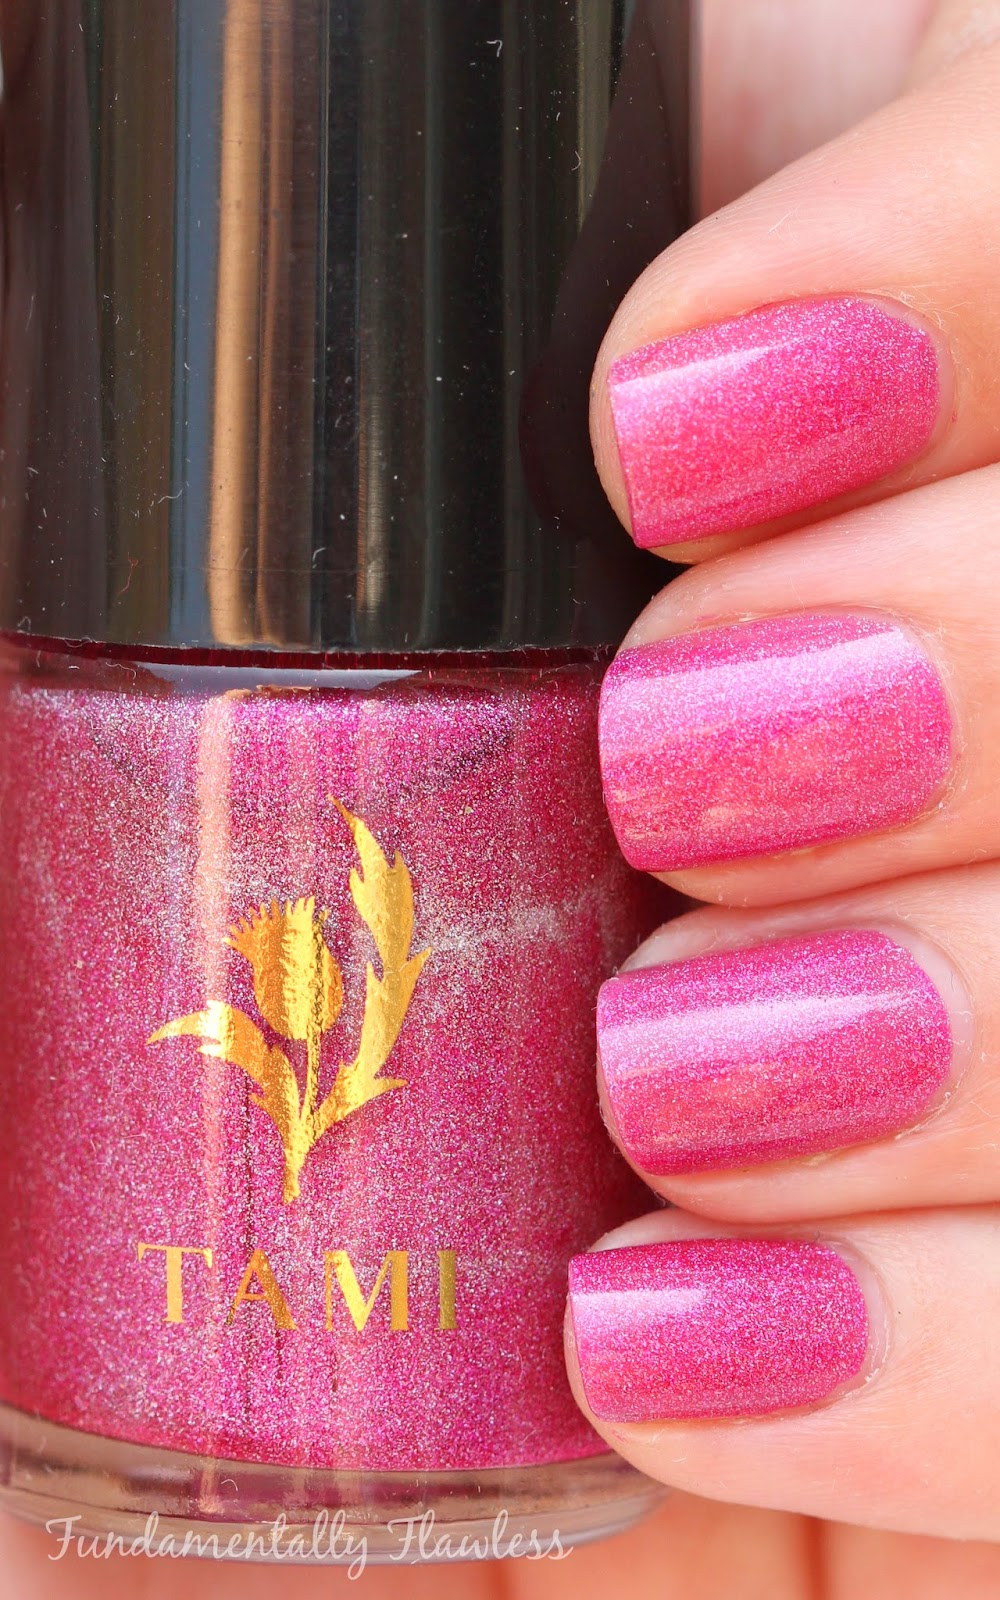 Tami Beauty Skibo Sunset swatch